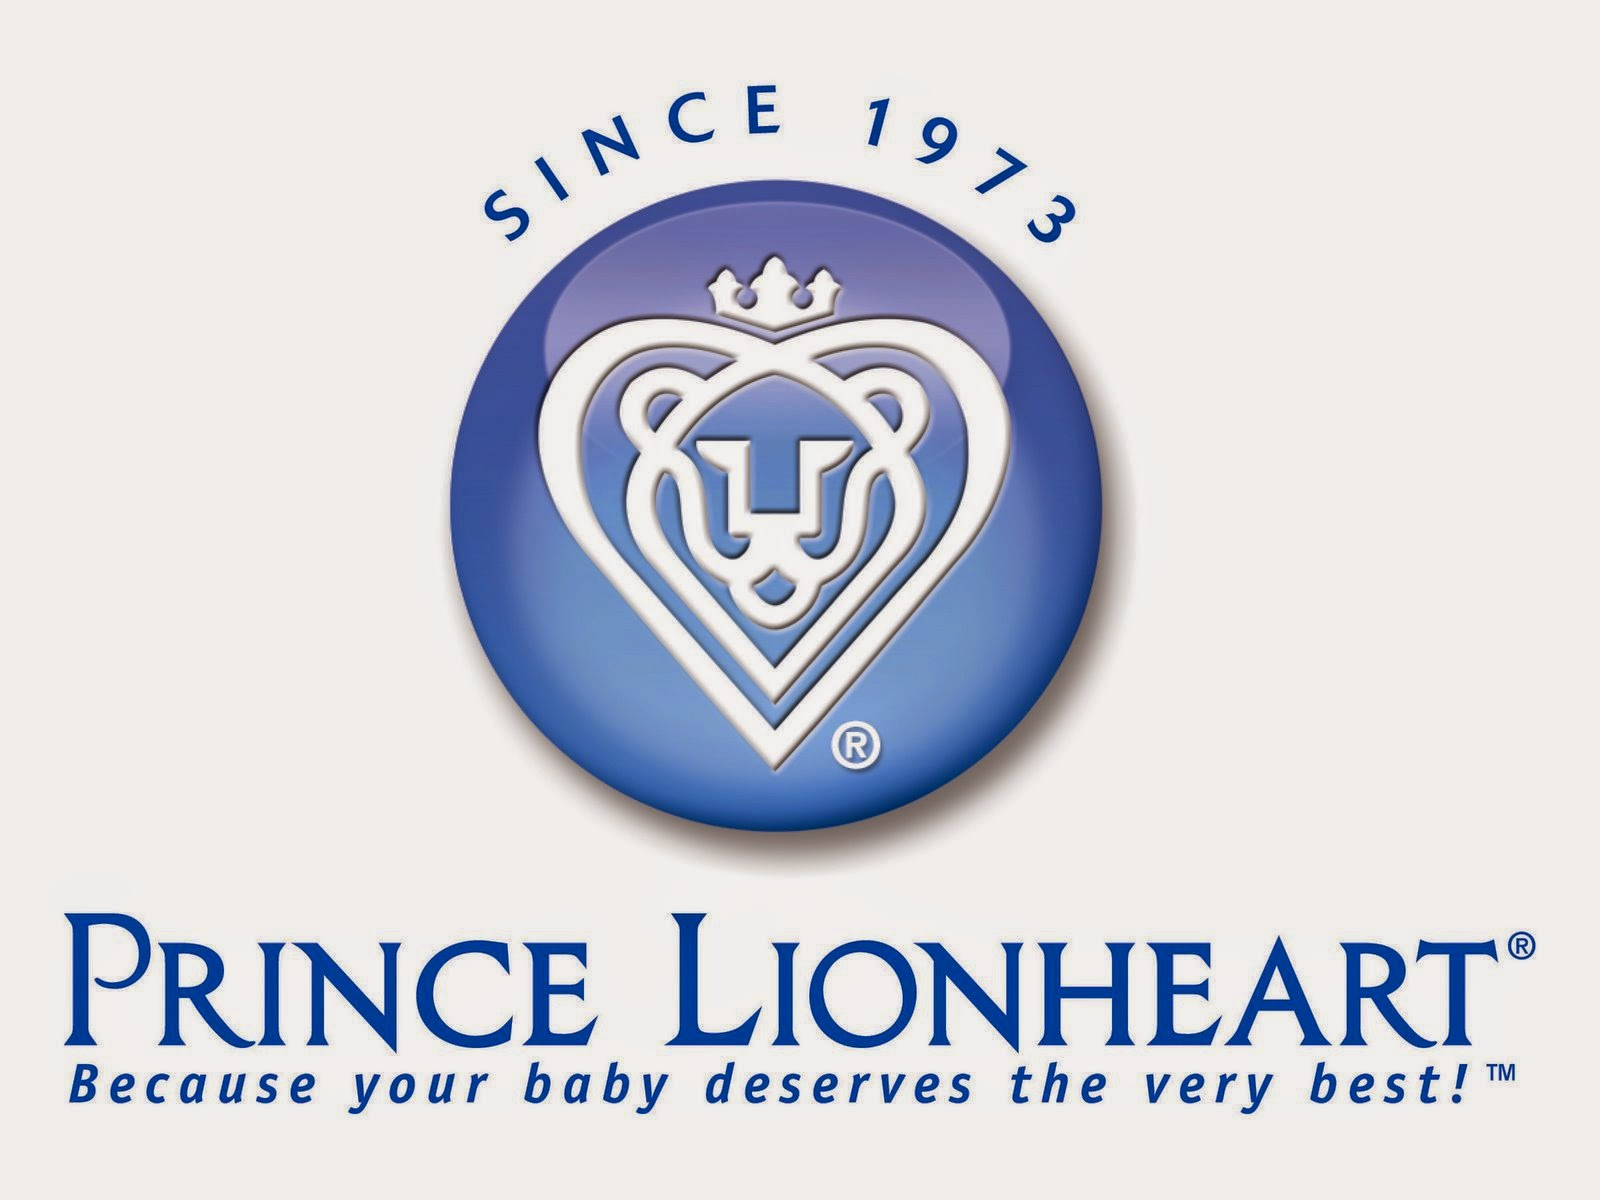 Pince LionHeart Diaper Depot. Review (Blu me away or Pink of me Event)